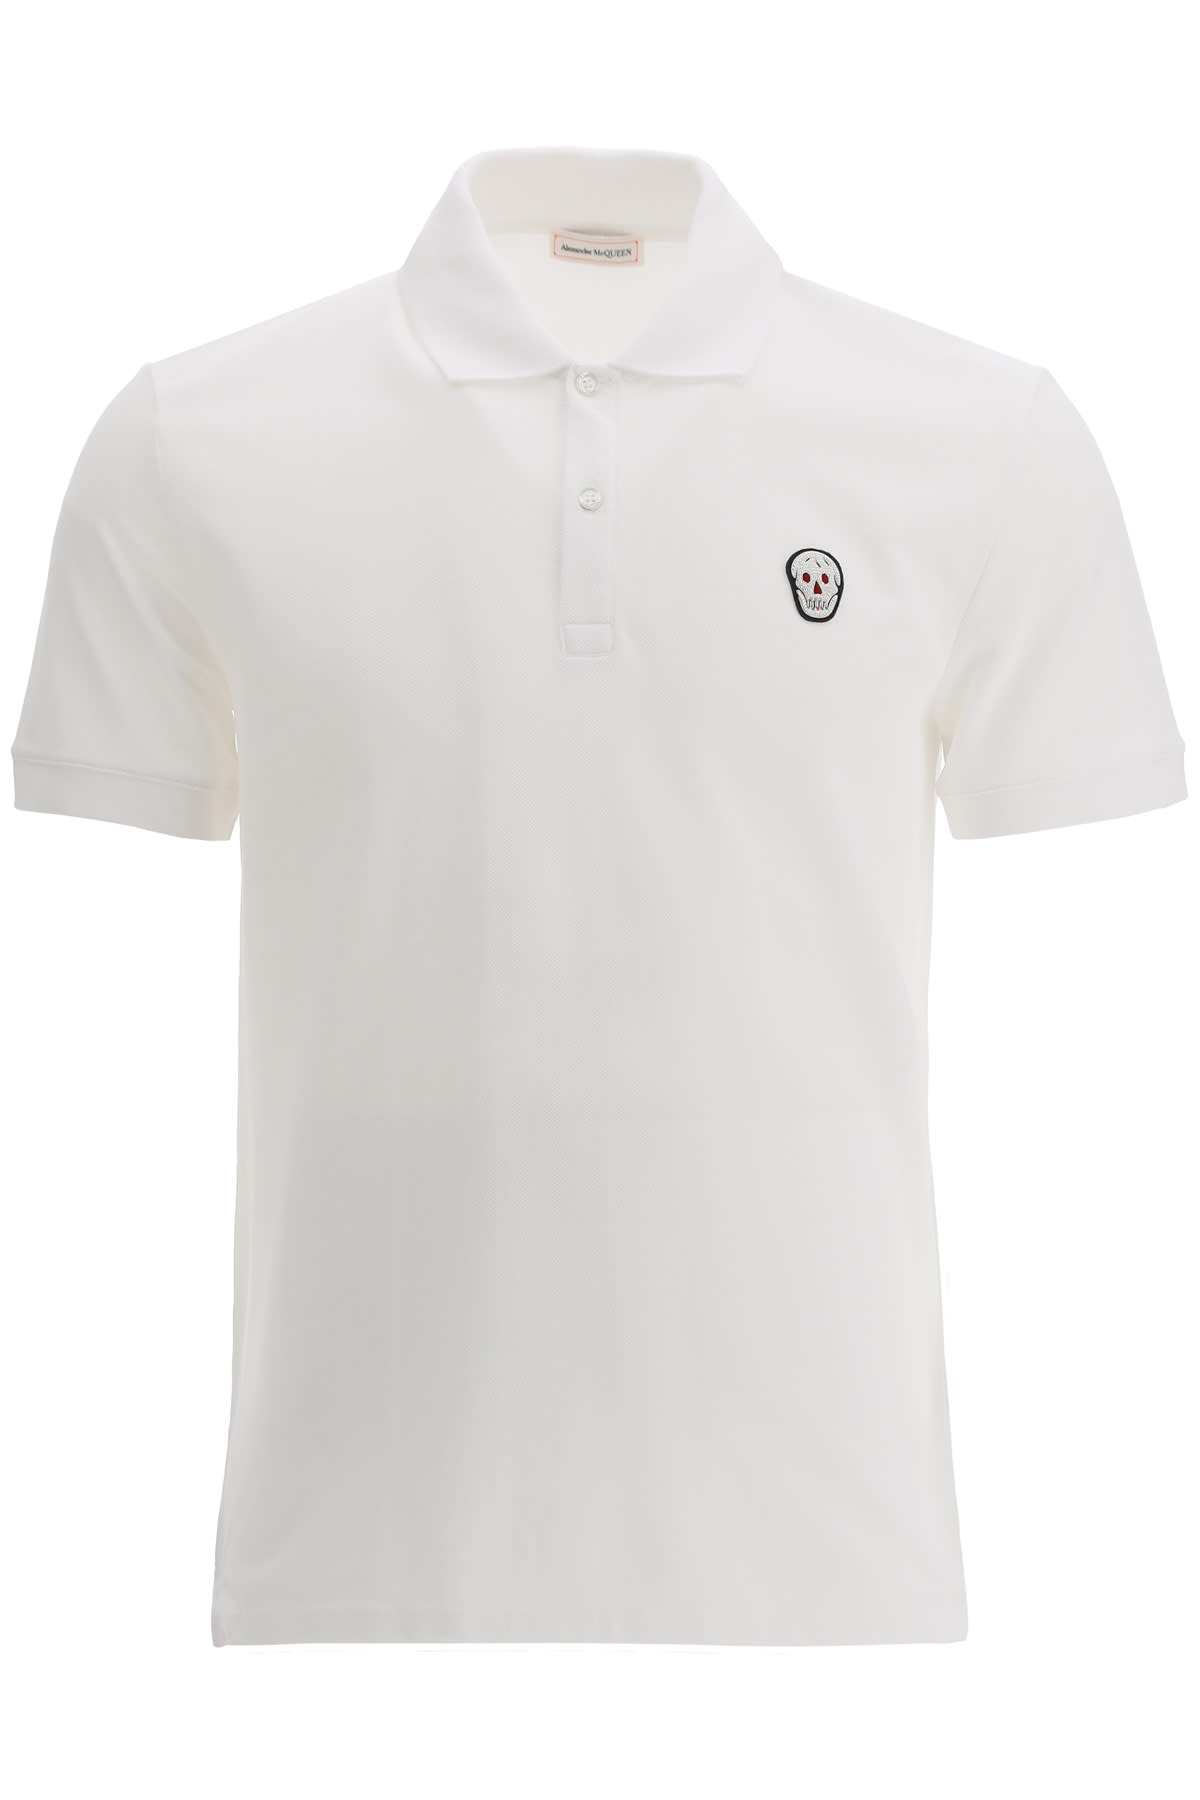 Polo Shirt With Skull Patch